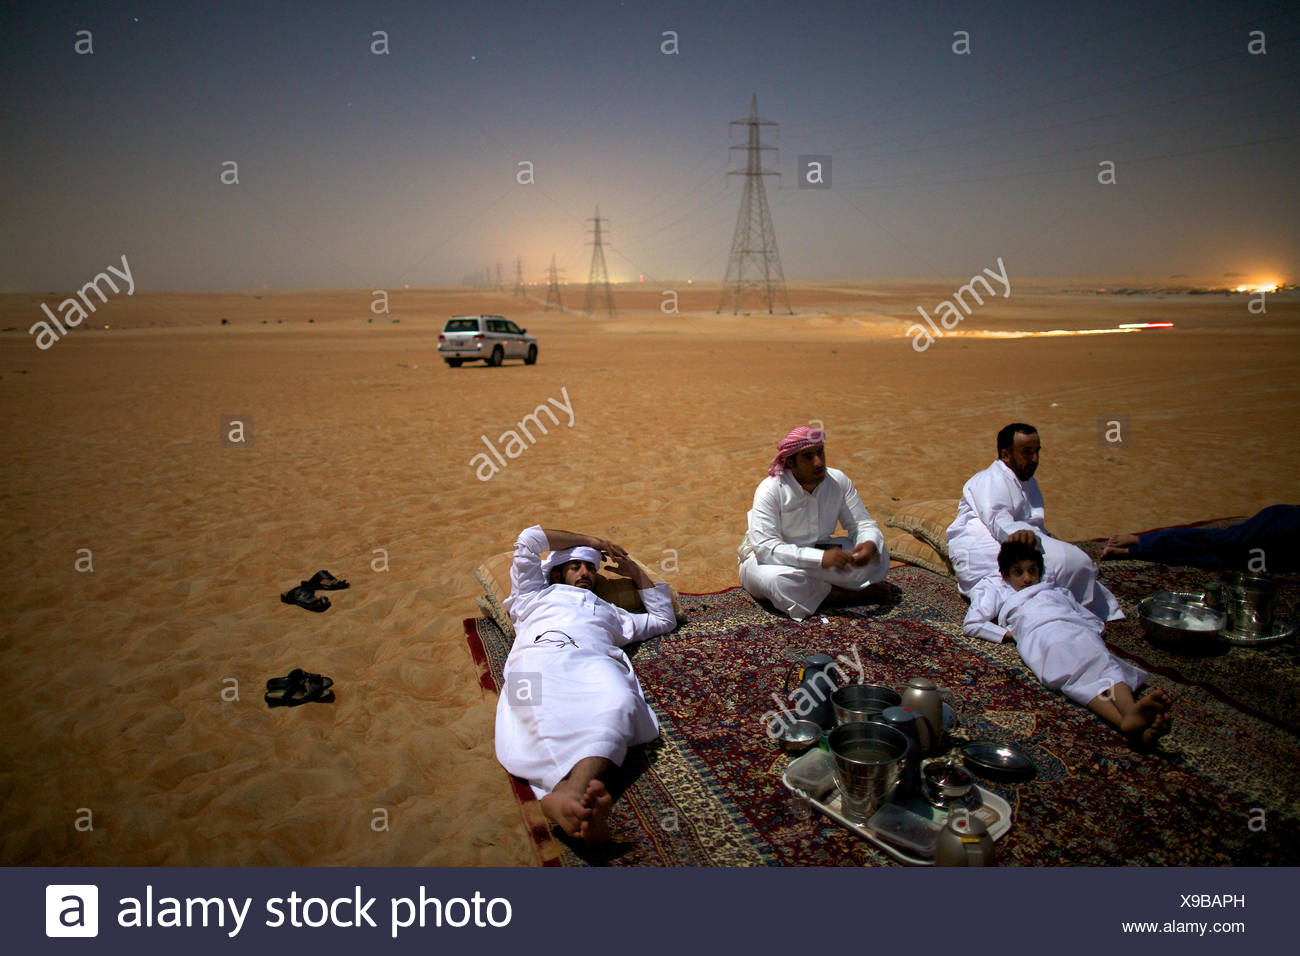 Al Mazrouei Bedouins relish an evening in their ever changing desert. - Stock Image